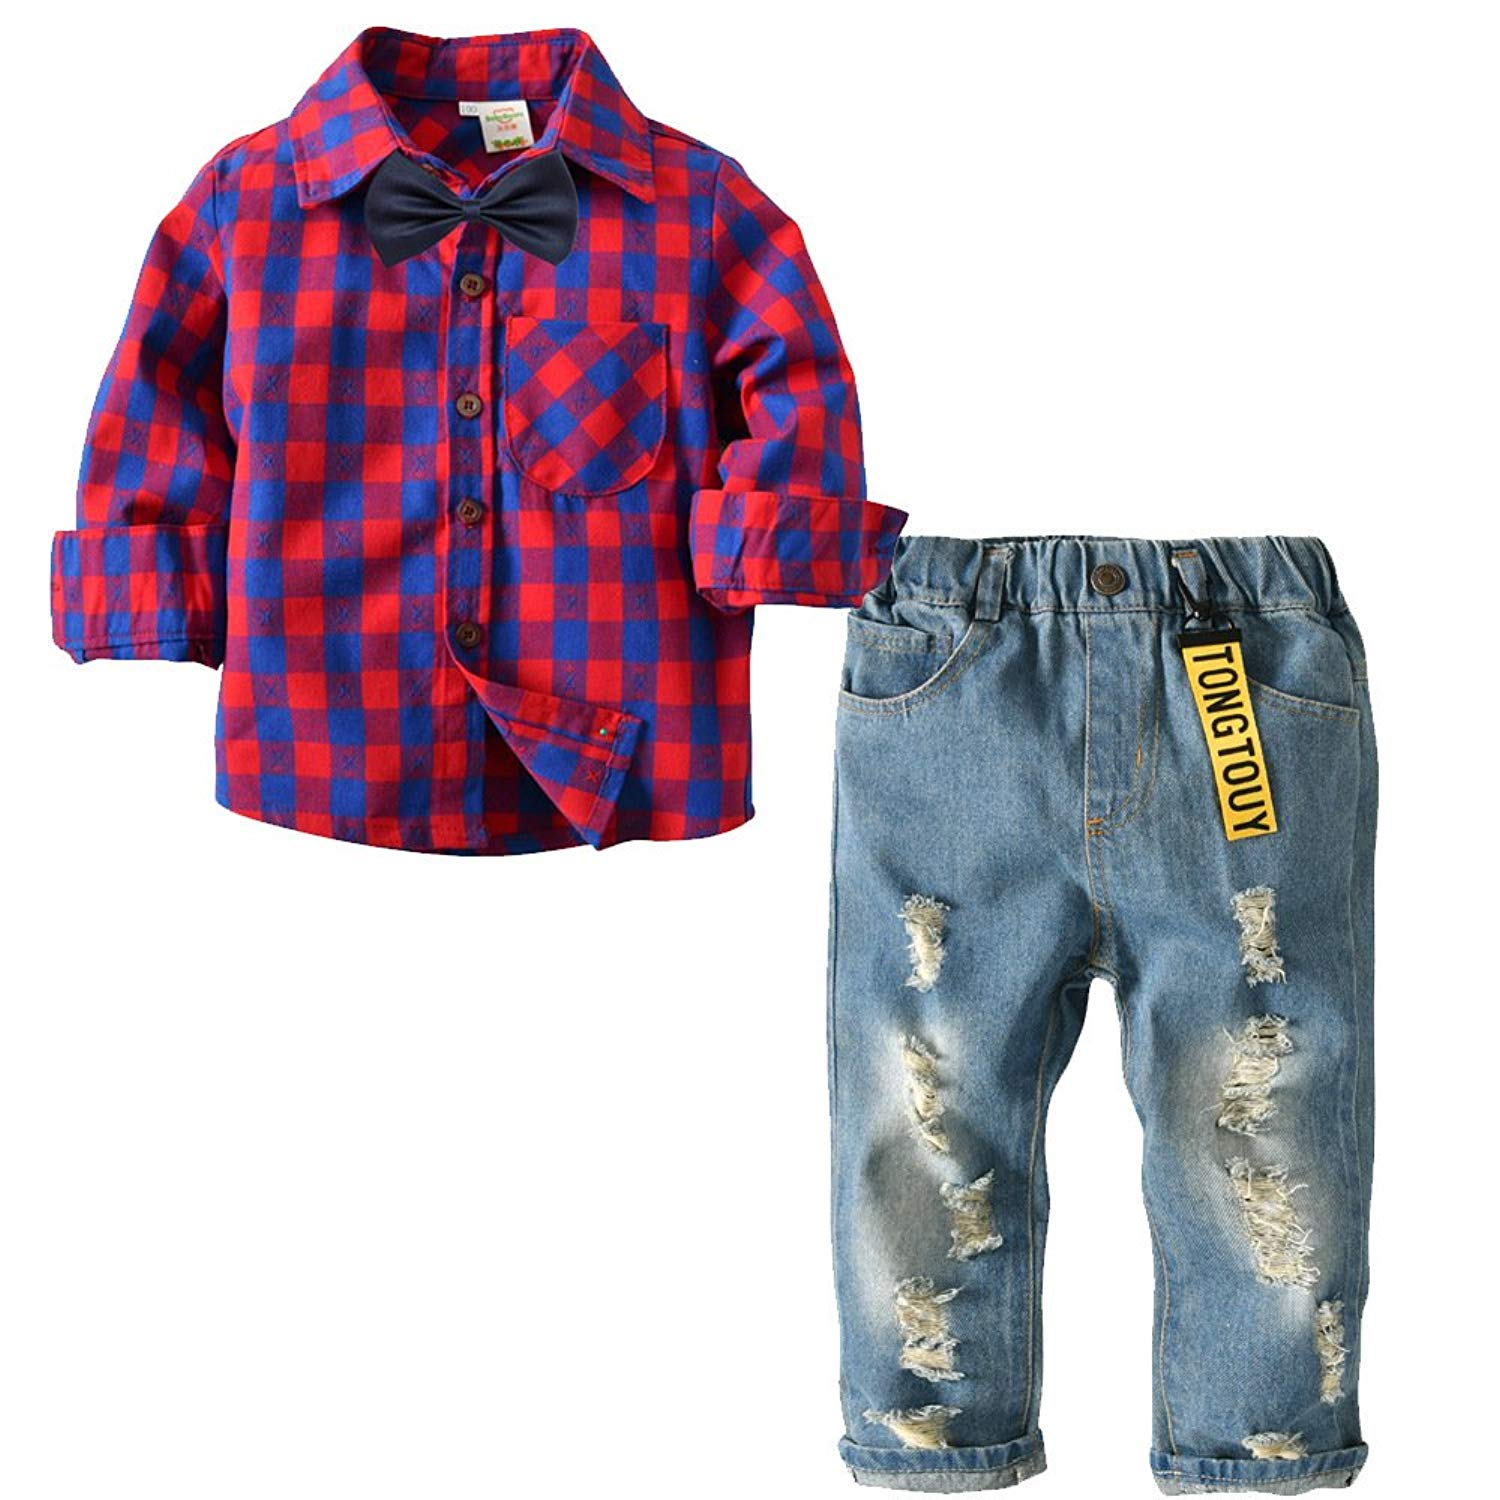 24d427a556ba2 AIKSSOO 2pcs Boys Gentleman Outfit Long Sleeve Grid Shirt Denim Jeans Pant  Clothing Sets Bow